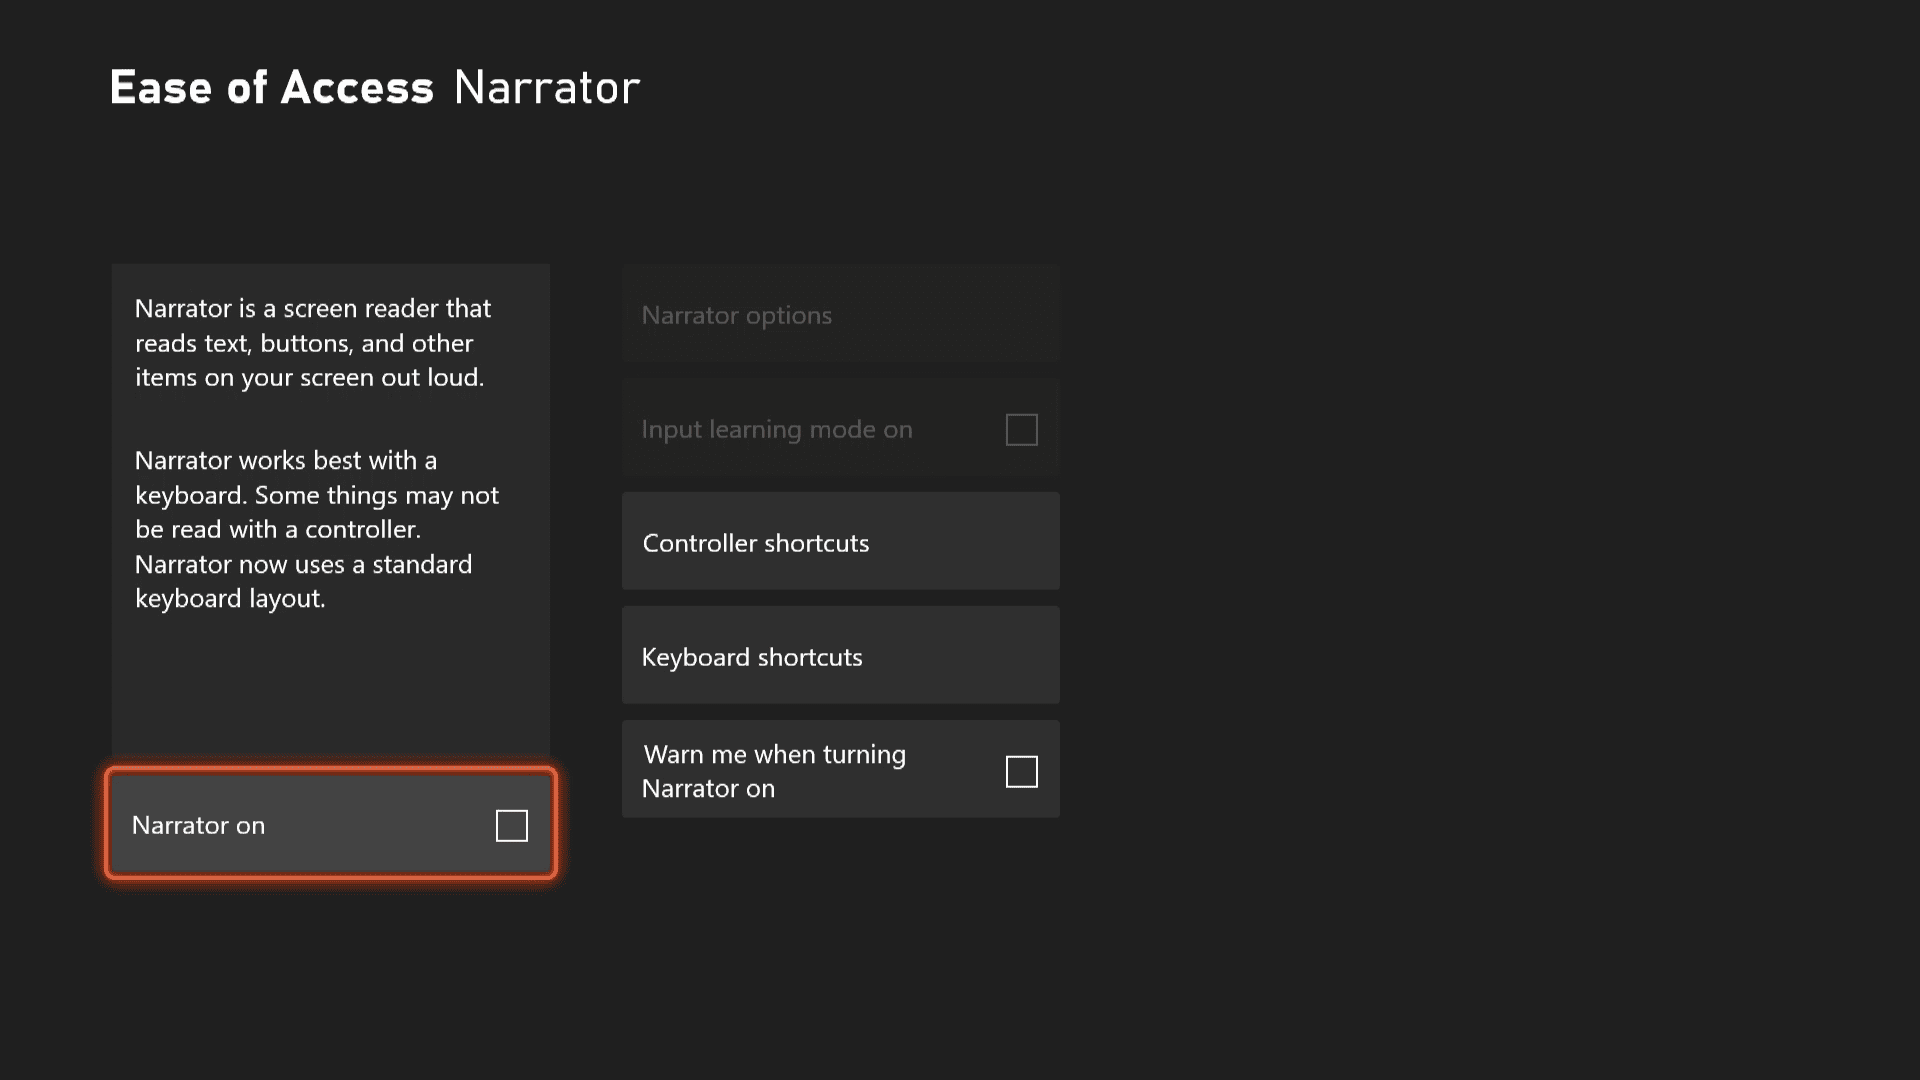 Turning the narrator off on Xbox Series X|S.